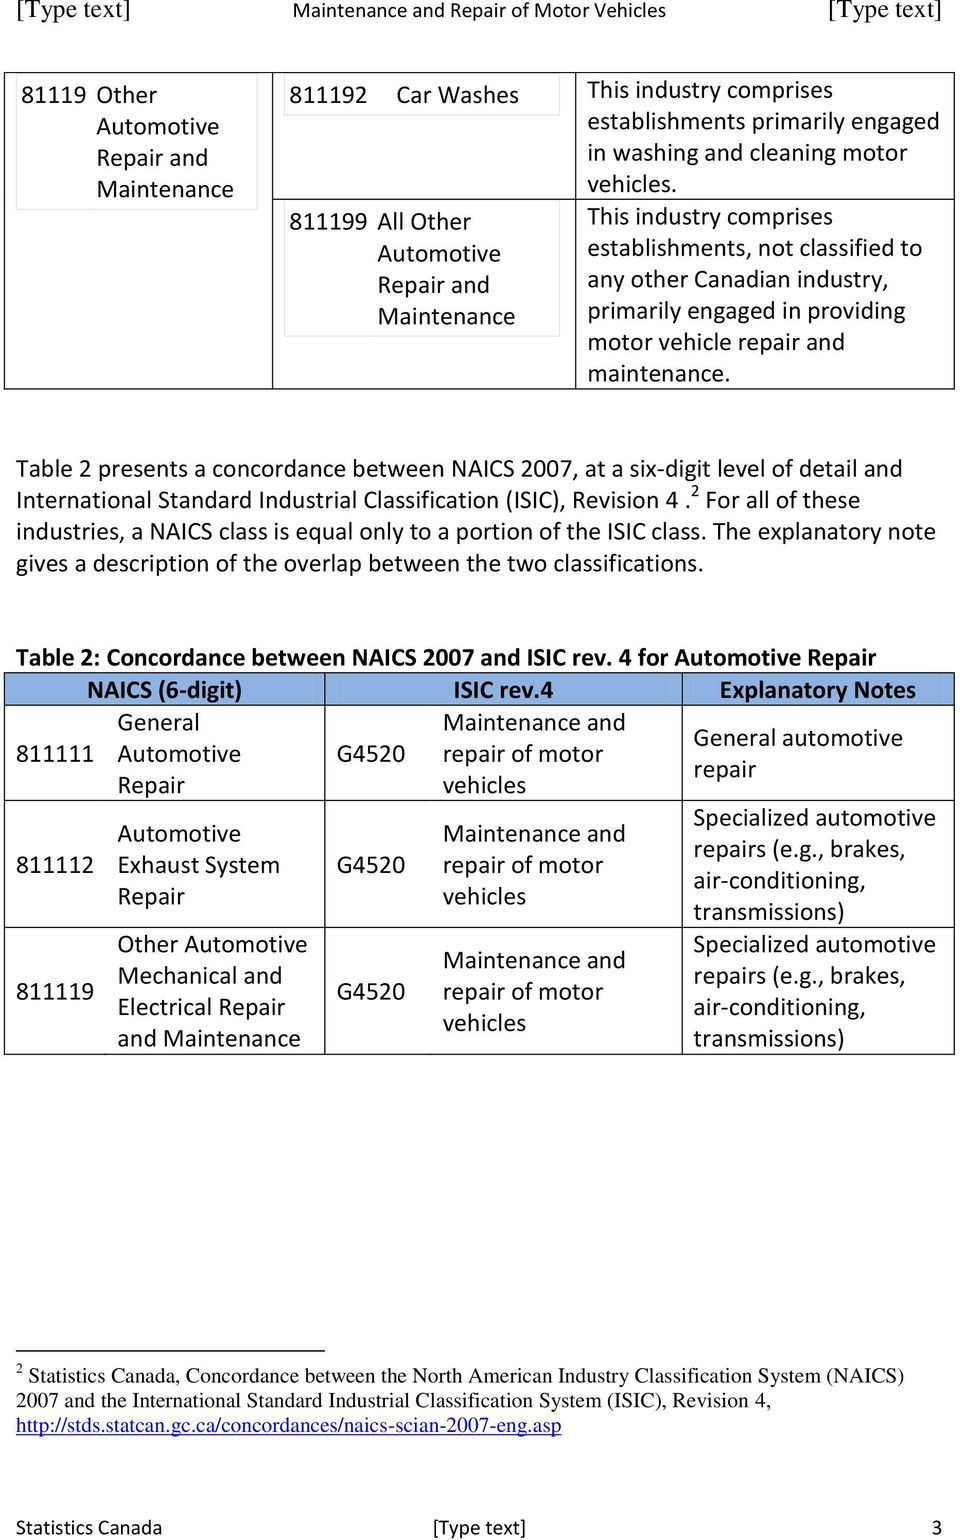 maintenance. Table 2 presents a concordance between NAICS 2007, at a six-digit level of detail and International Standard Industrial Classification (ISIC), Revision 4.